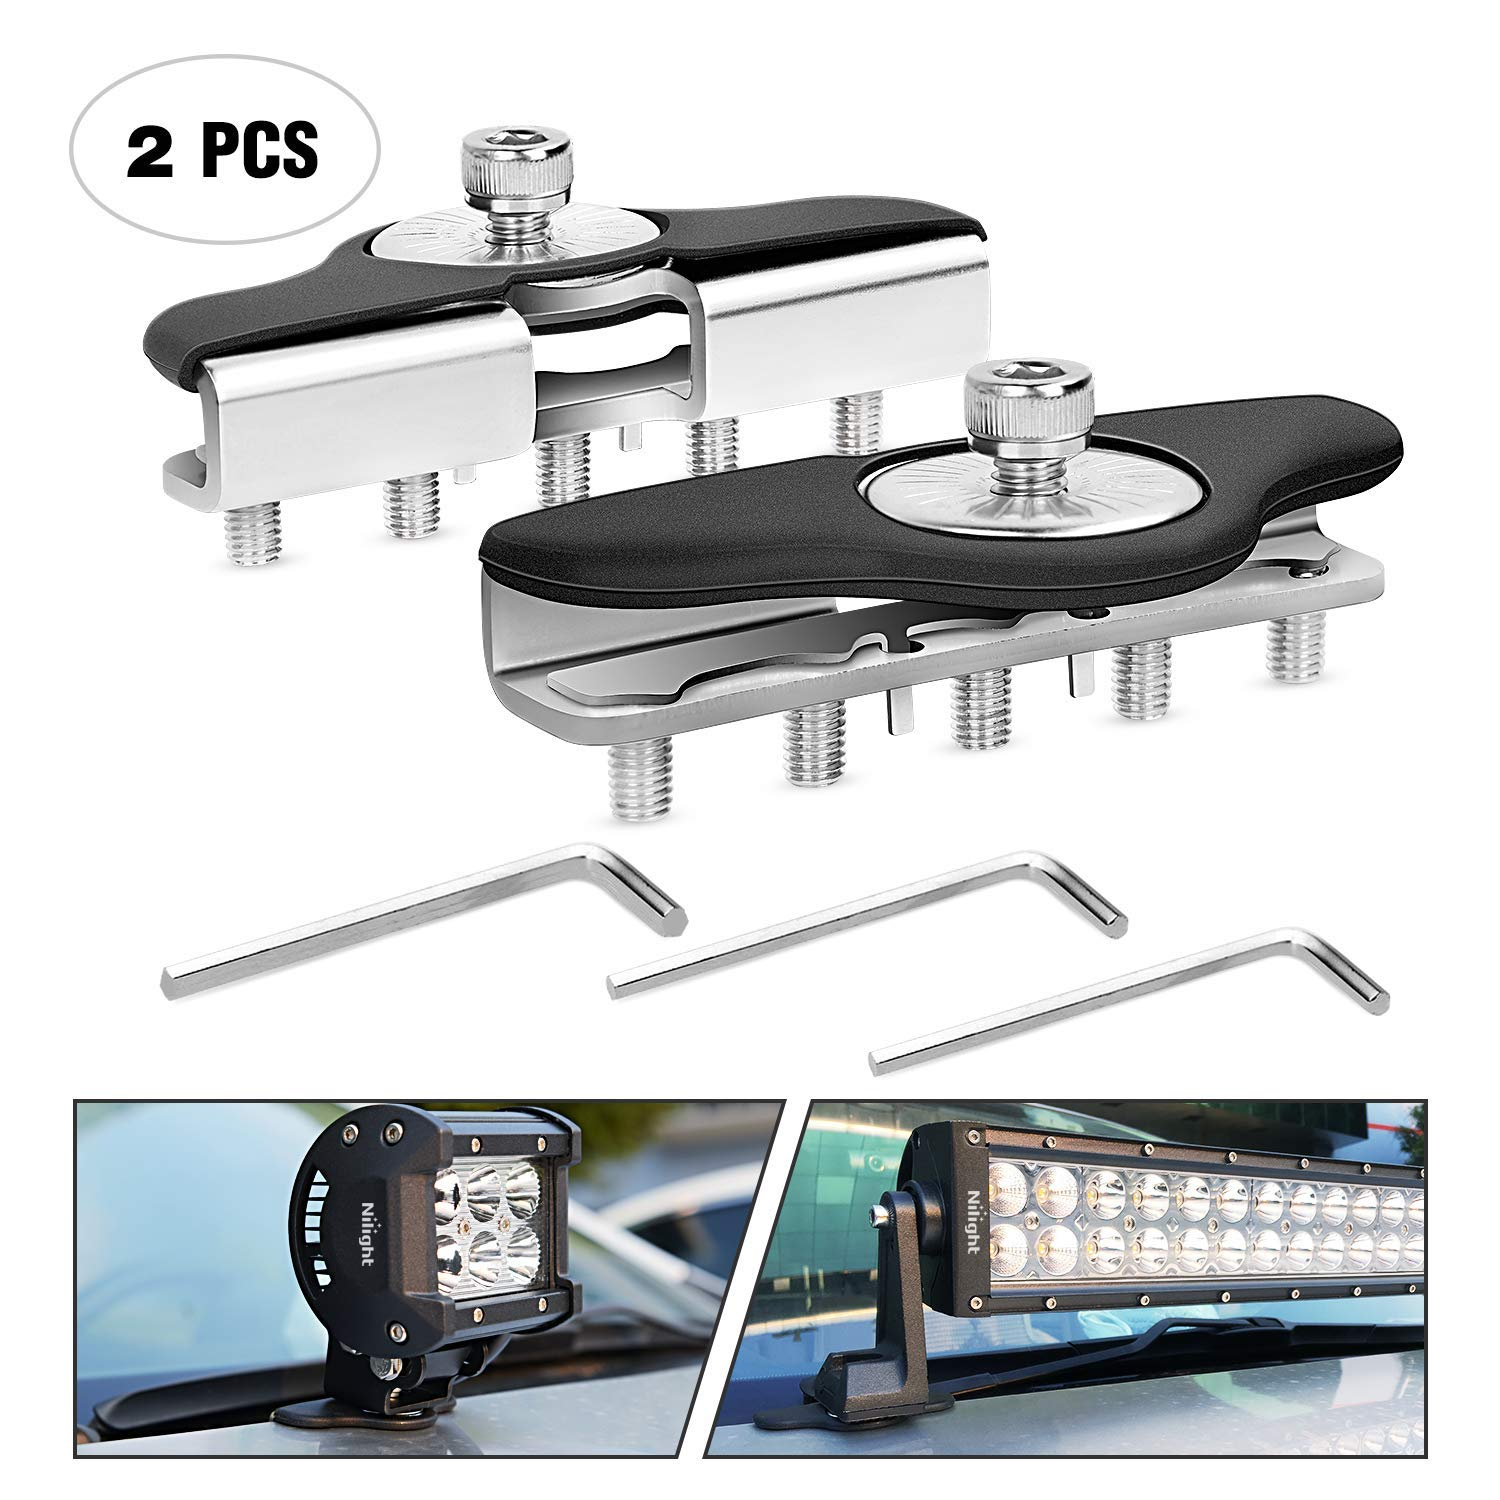 Nilight 90025B Led Light Bar Mounting Brackets 2pcs Universal Hood Led Work Light led Pods Mount Bracket Clamp Holder for SUV Truck Off Road Installed No Need Drilling, 2 Years Warranty